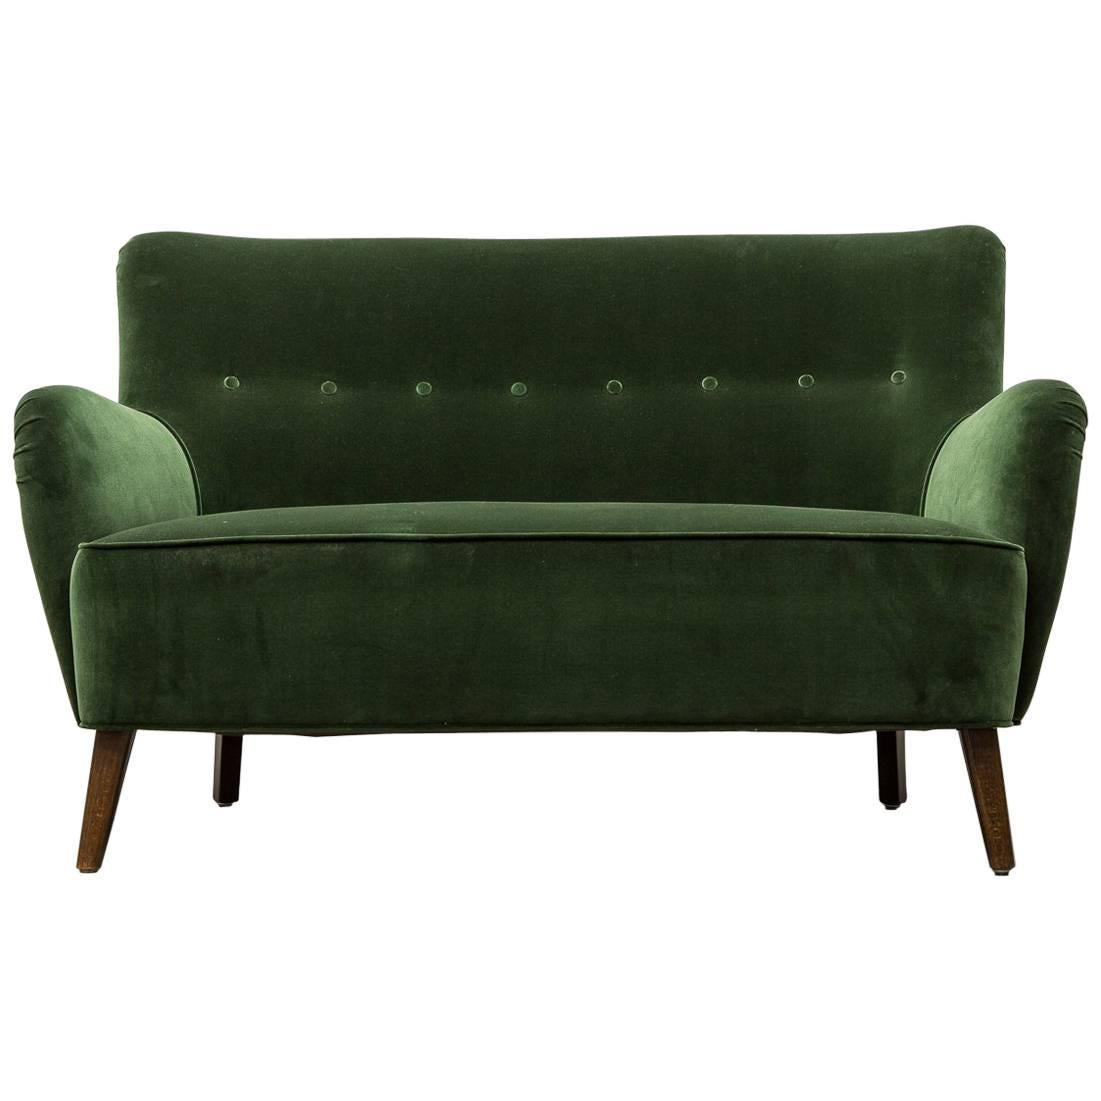 Gorgeous Artifort Emerald Green Velvet Sofa By Theo Ruth 1